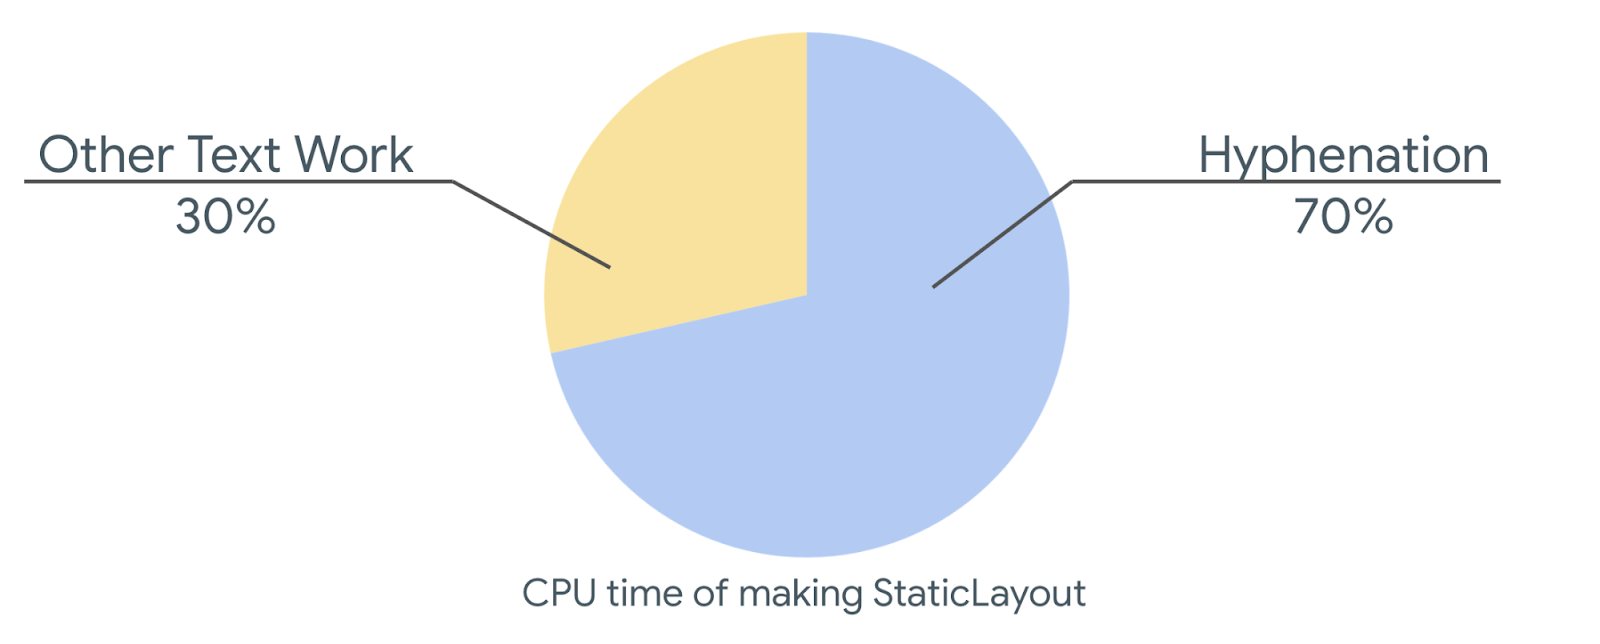 pie chart showing CPU of time spent making StaticLayout: Hyphenation takes up to 70% of the time spent measuring text, 30% Other text